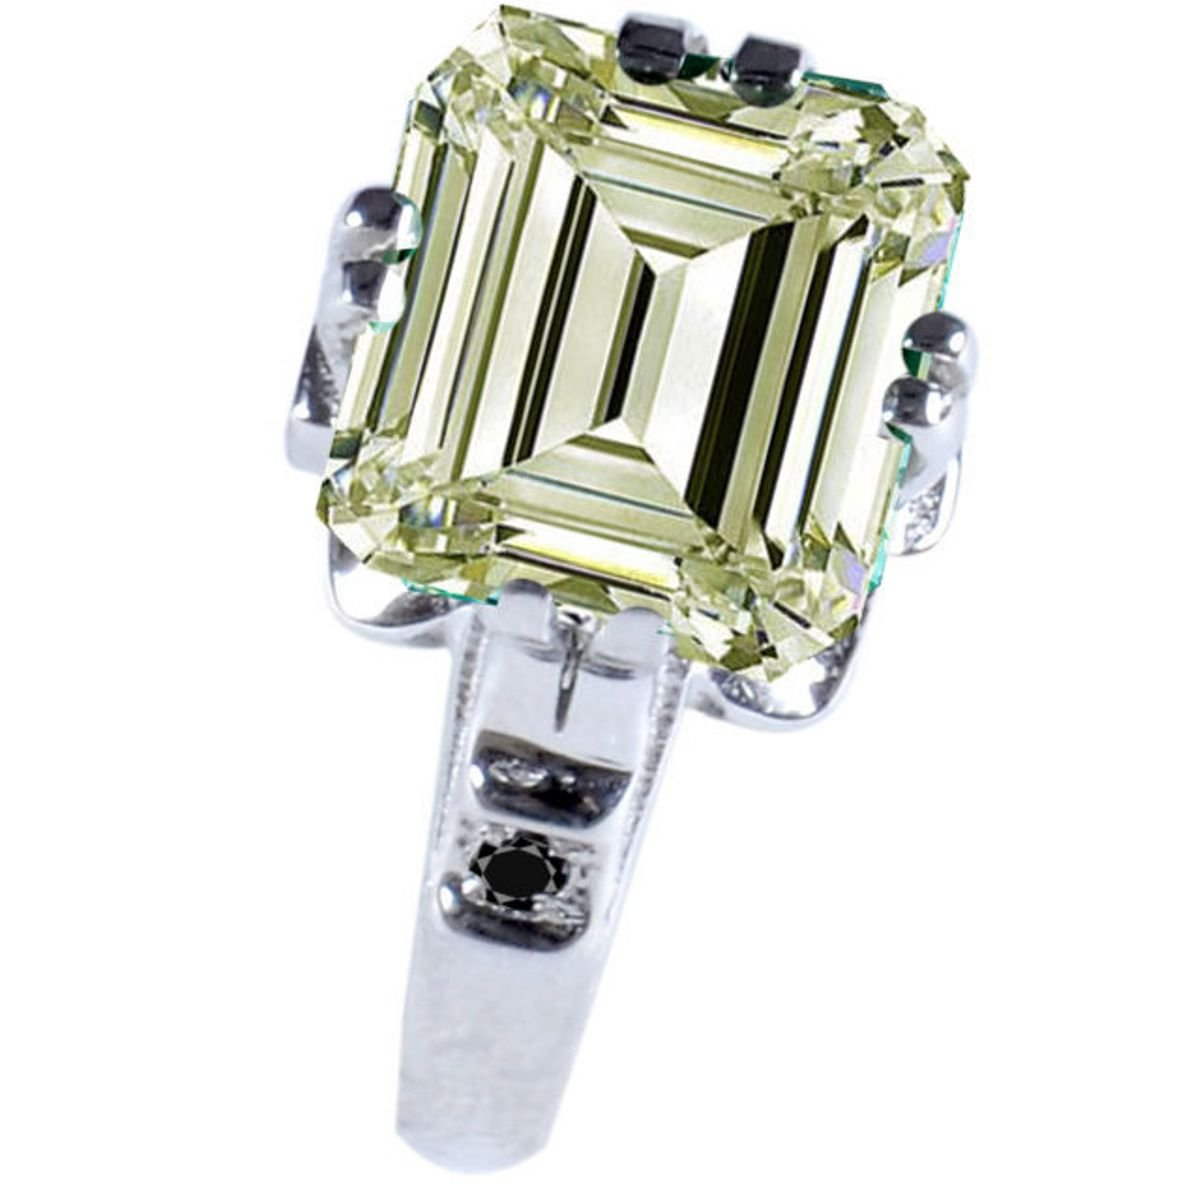 RINGJEWEL 3.70 ct VS1 Emerald Moissanite Silver Plated Engagement Ring Off White Color Size 7 by RINGJEWEL